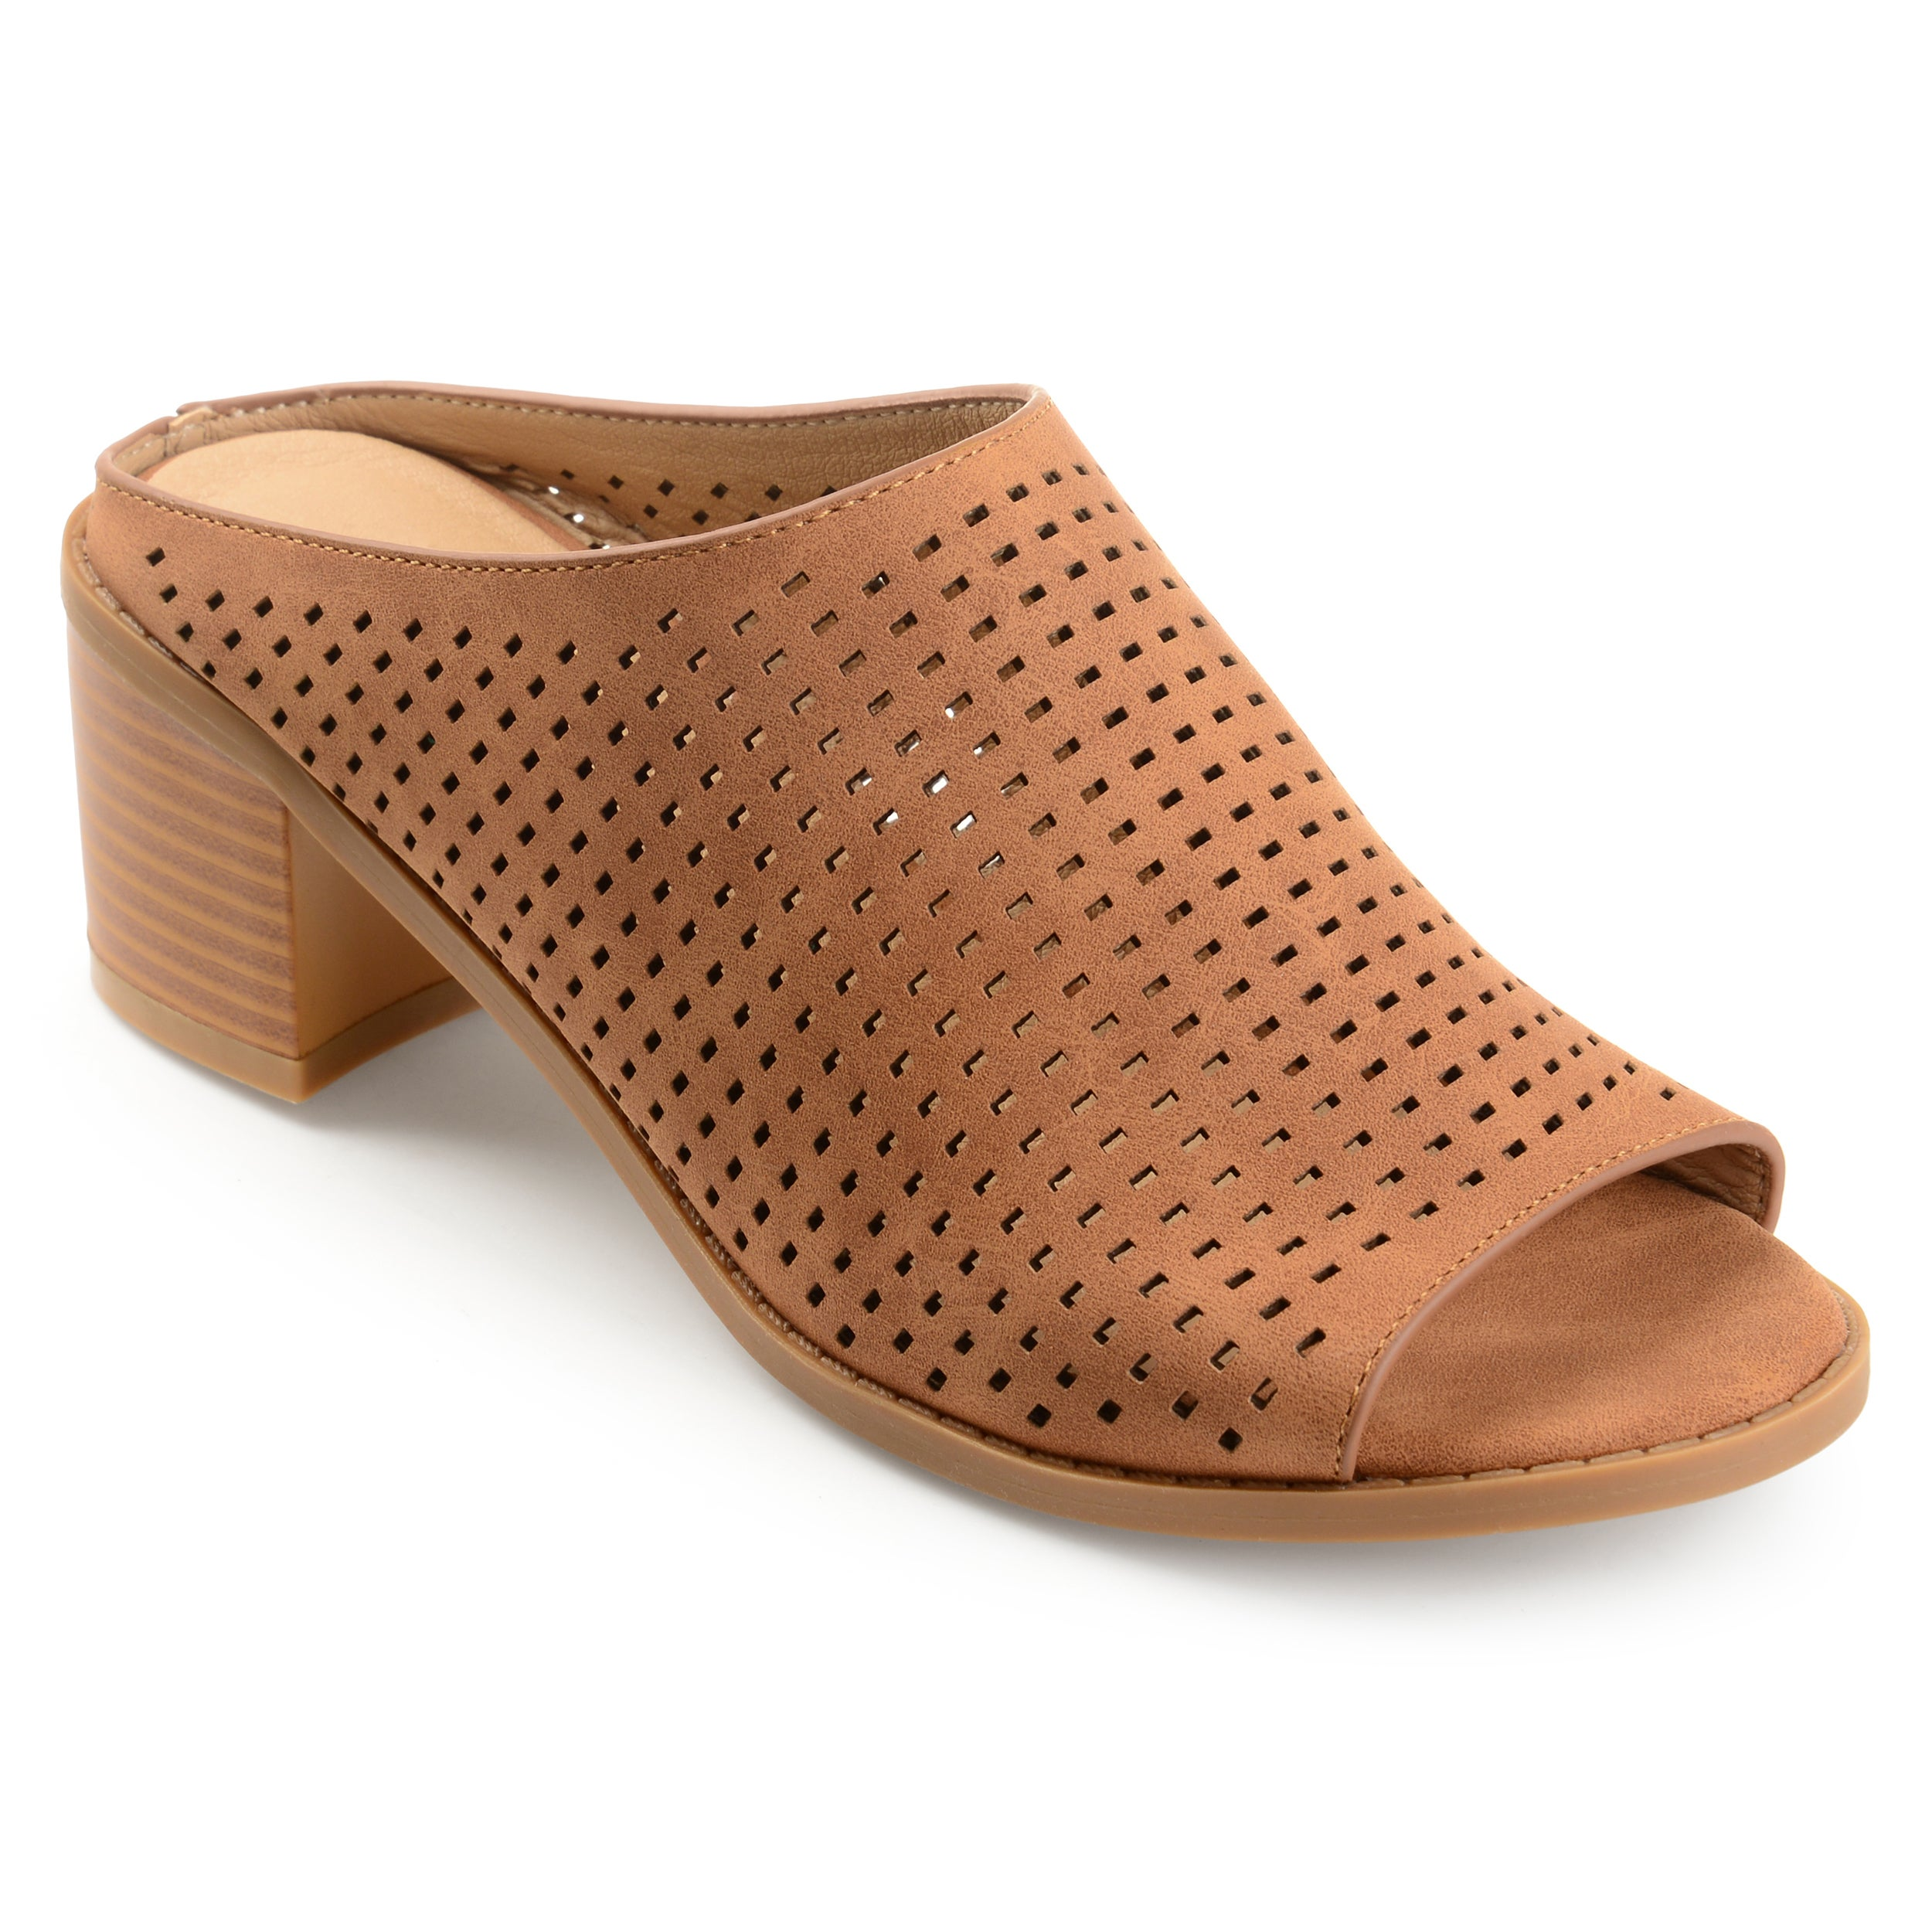 Journee Collection Ziff ... Women's Mules cheap sale extremely for cheap online cheap sale shop free shipping shop for recommend sale online 5qW6YUTX